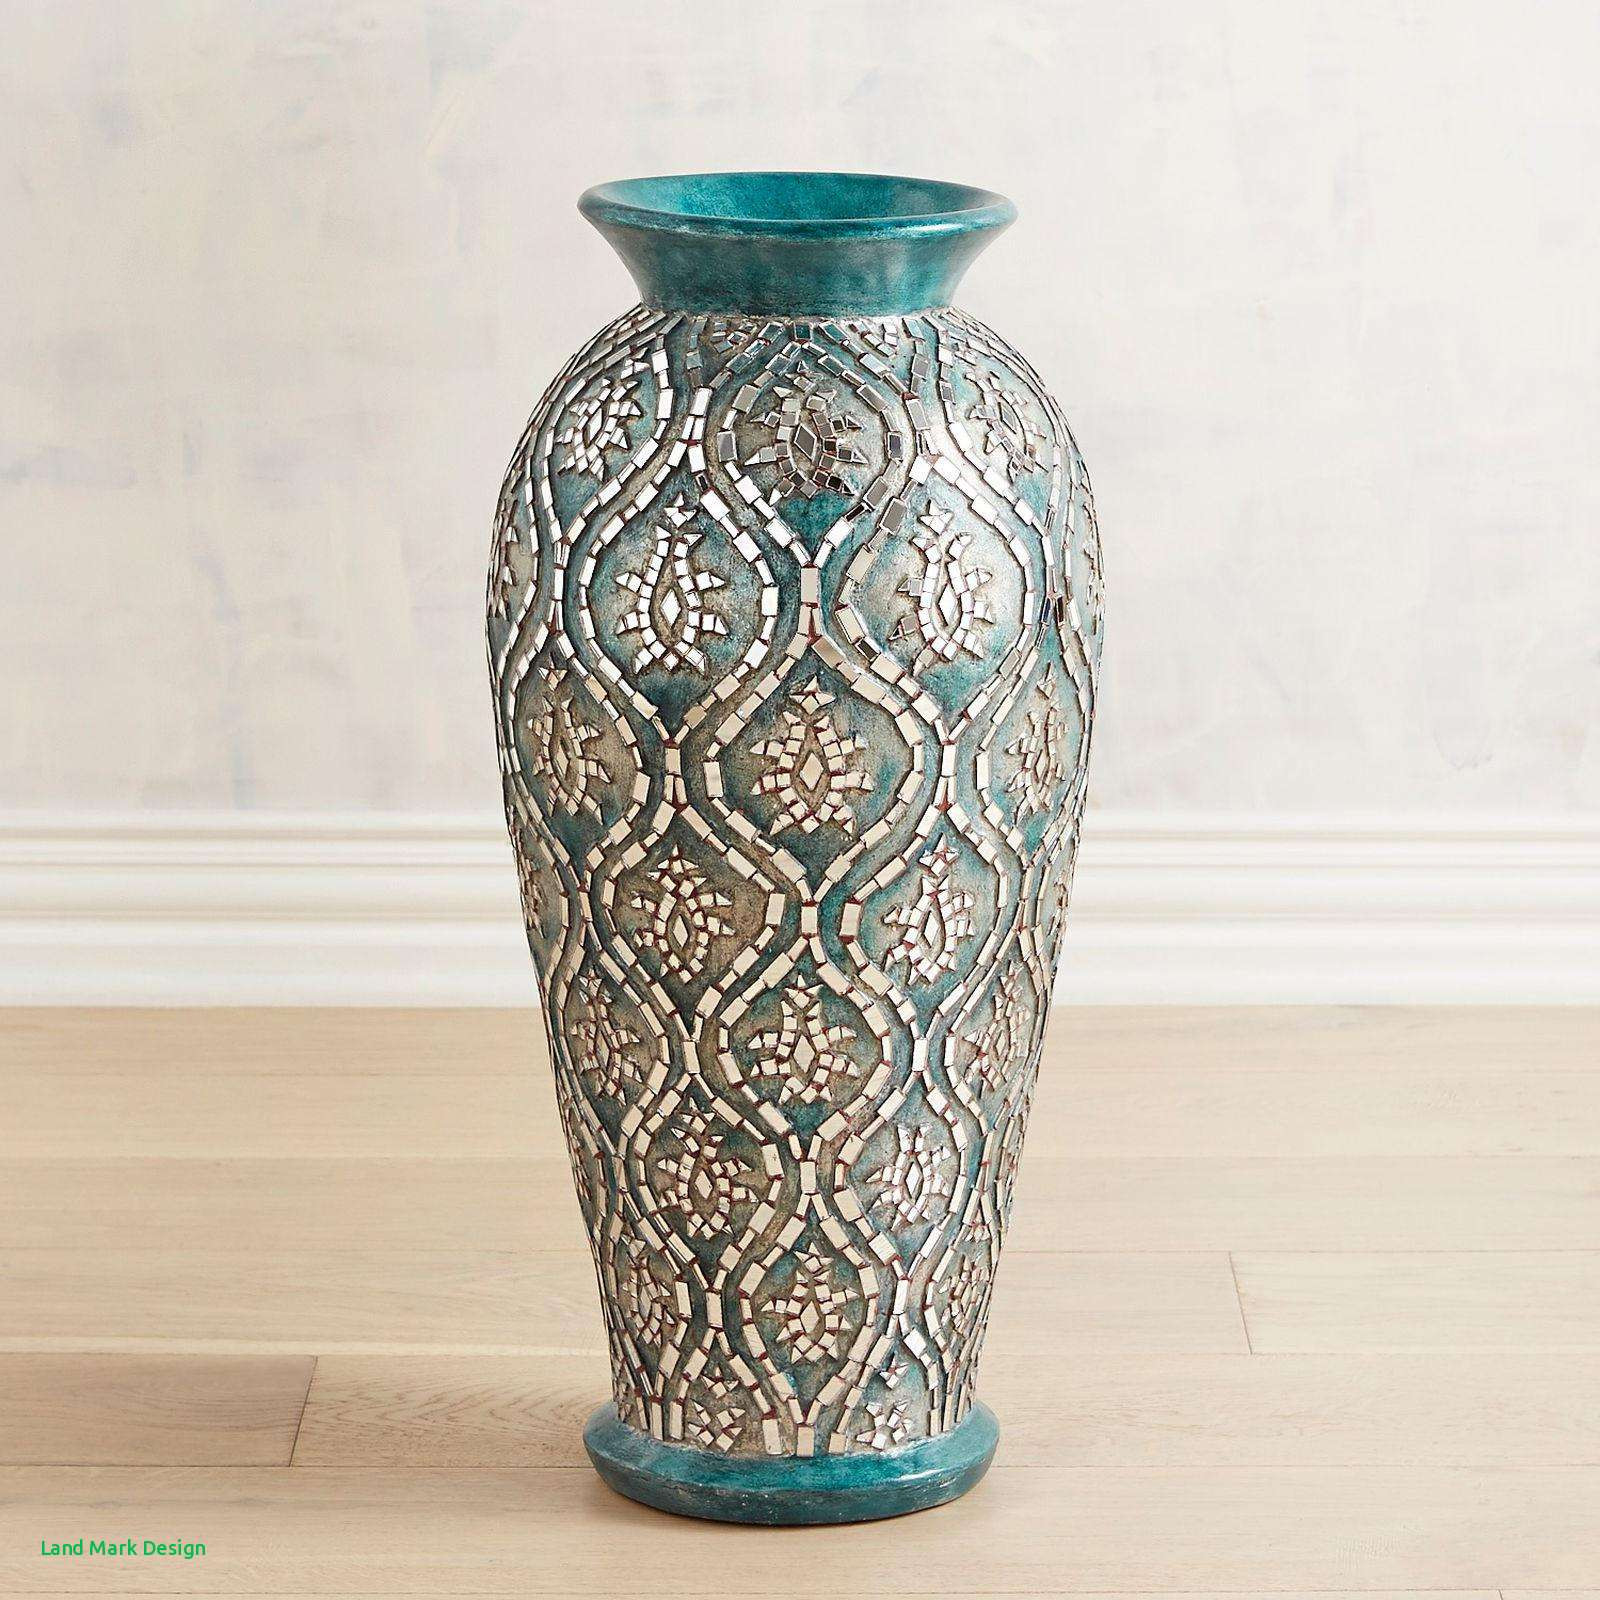 green celadon vase of teal floor vase design home design with full size of living room tall white floor vase inspirational wood sculpture lh vases teal large